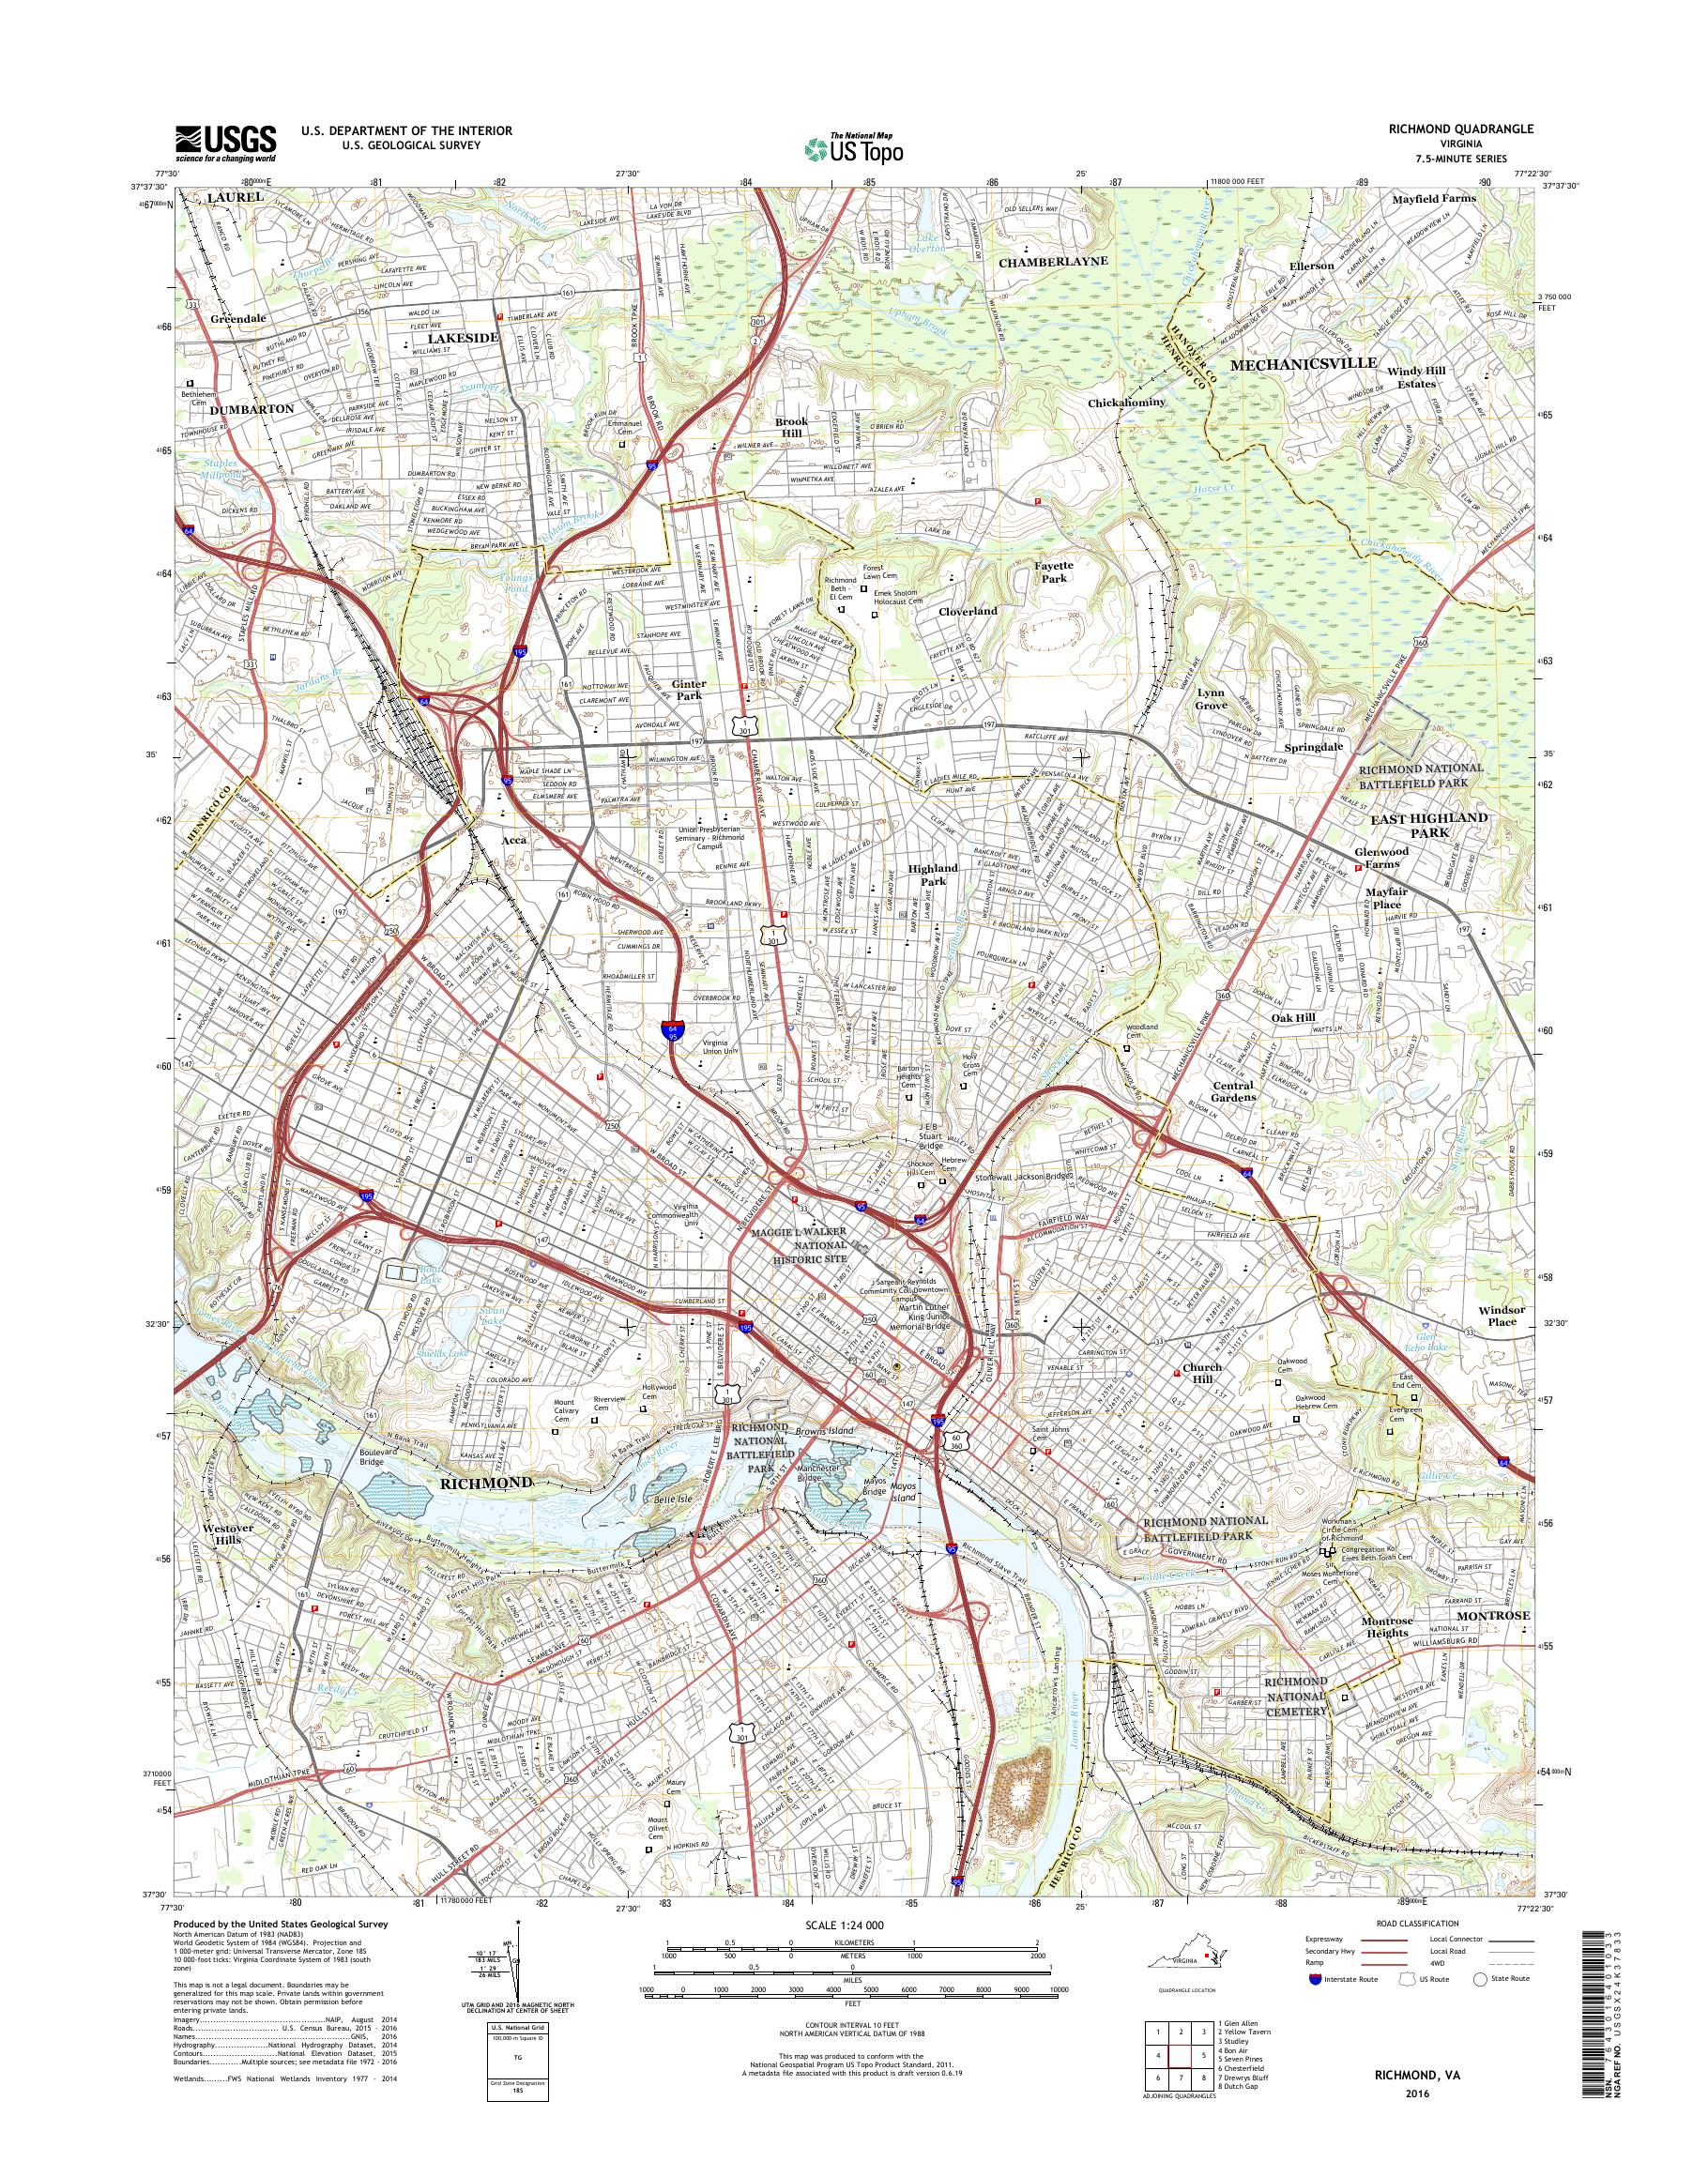 Mytopo Richmond Virginia Usgs Quad Topo Map - Richmond-virginia-on-us-map